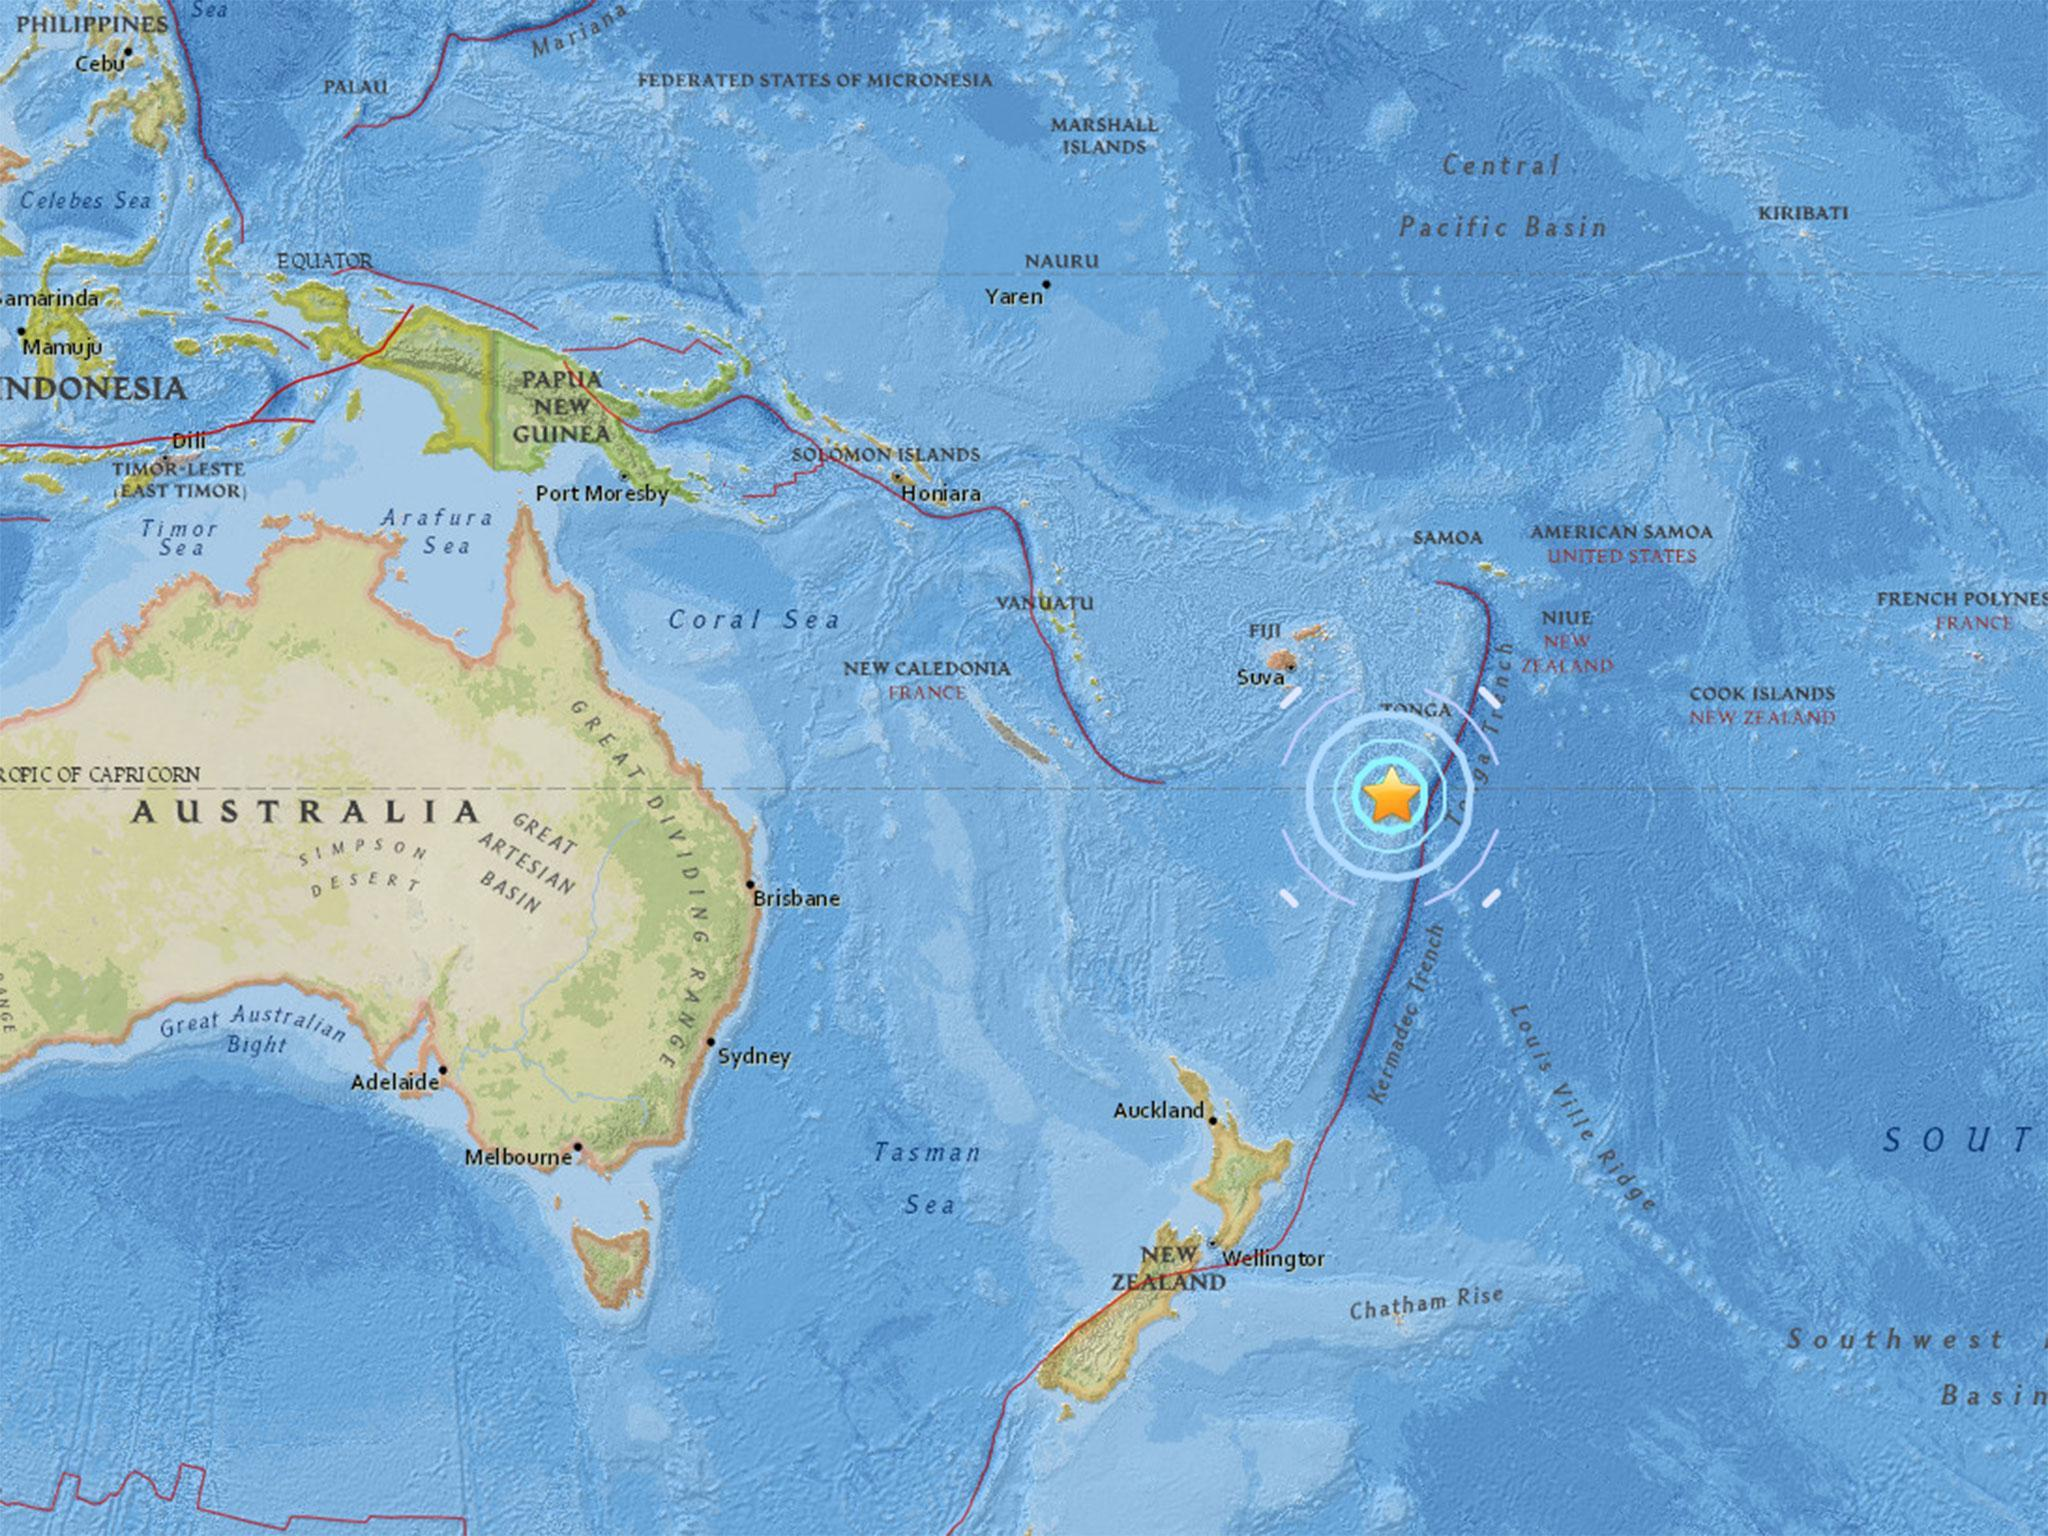 Fiji Earthquake 6 5 Magnitude Tremor Hits Pacific Off Fijian Islands The Independent